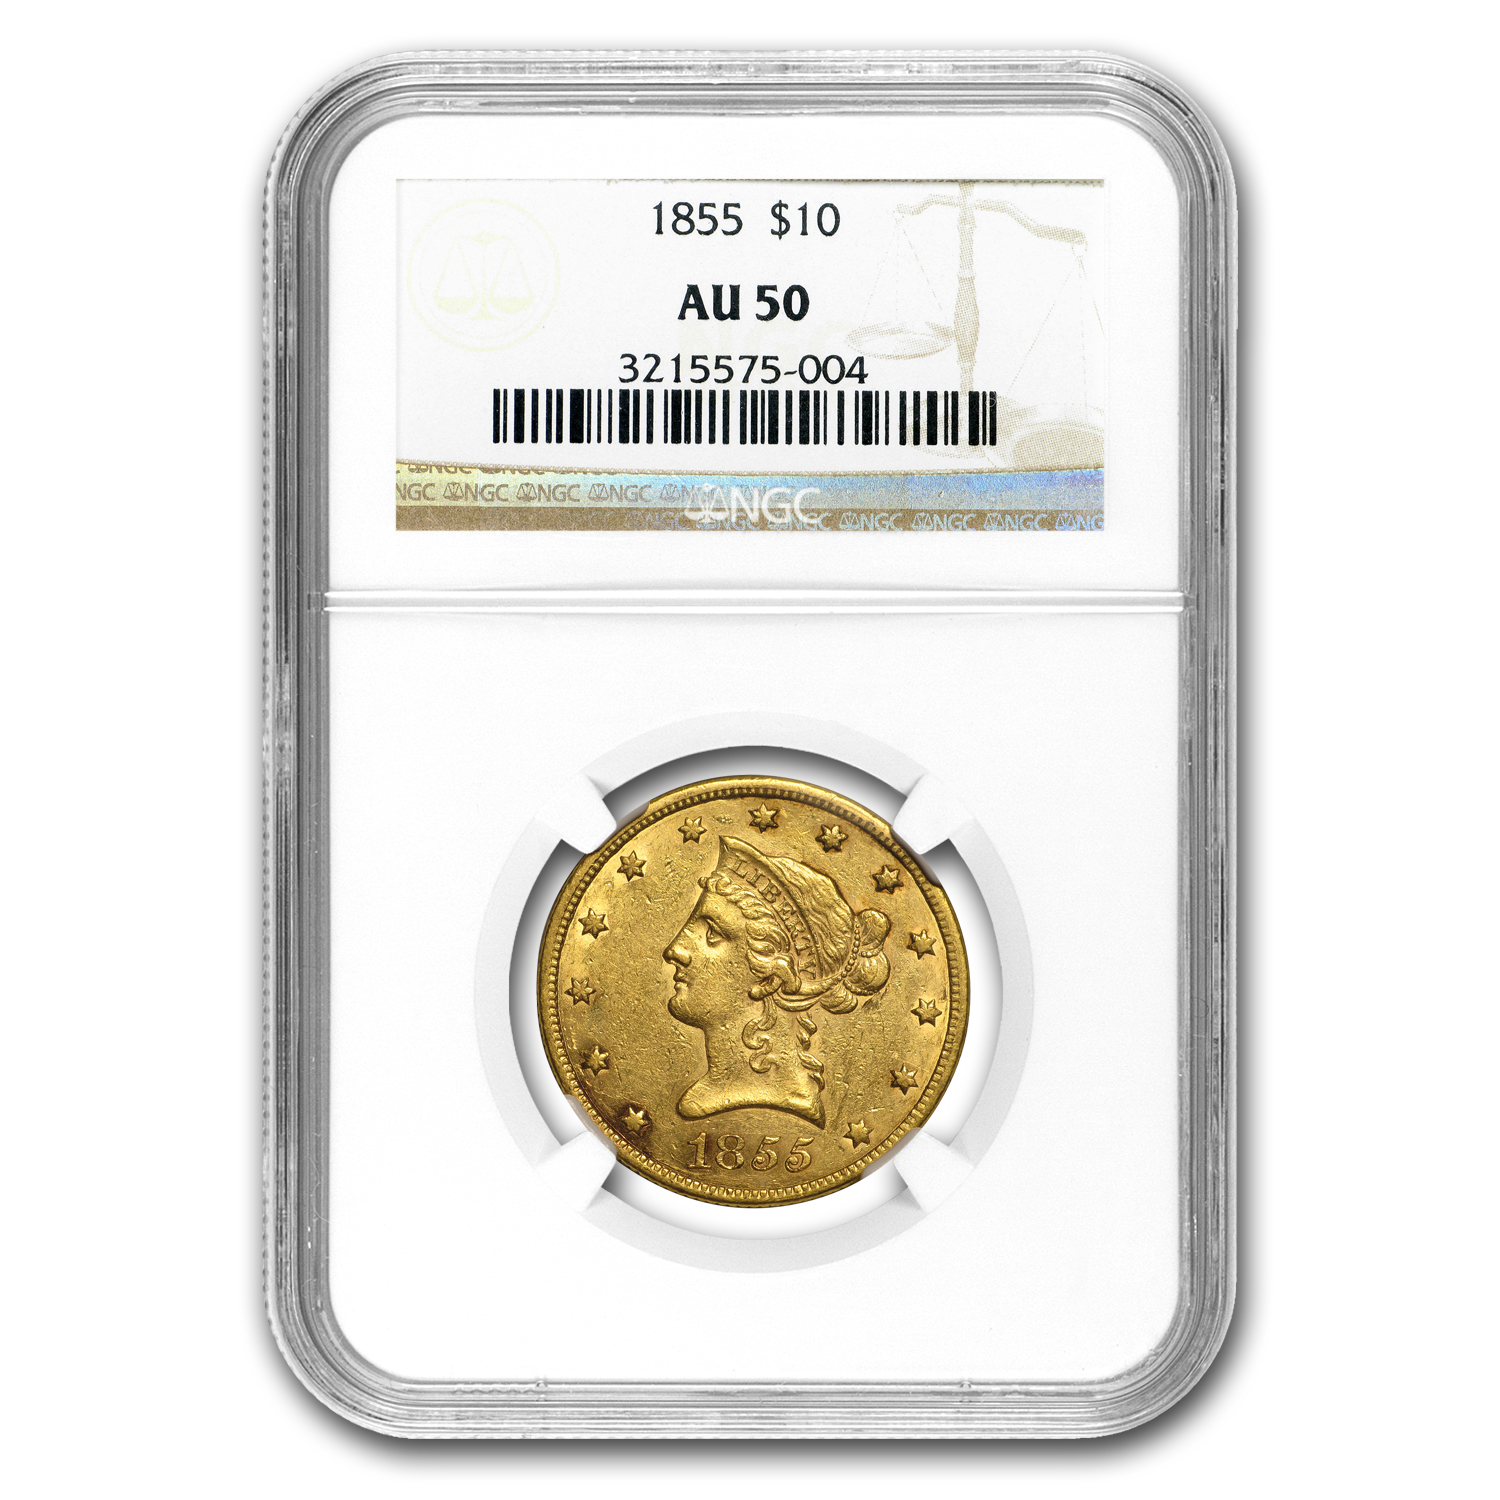 1855 $10 Liberty Gold Eagle AU-50 NGC